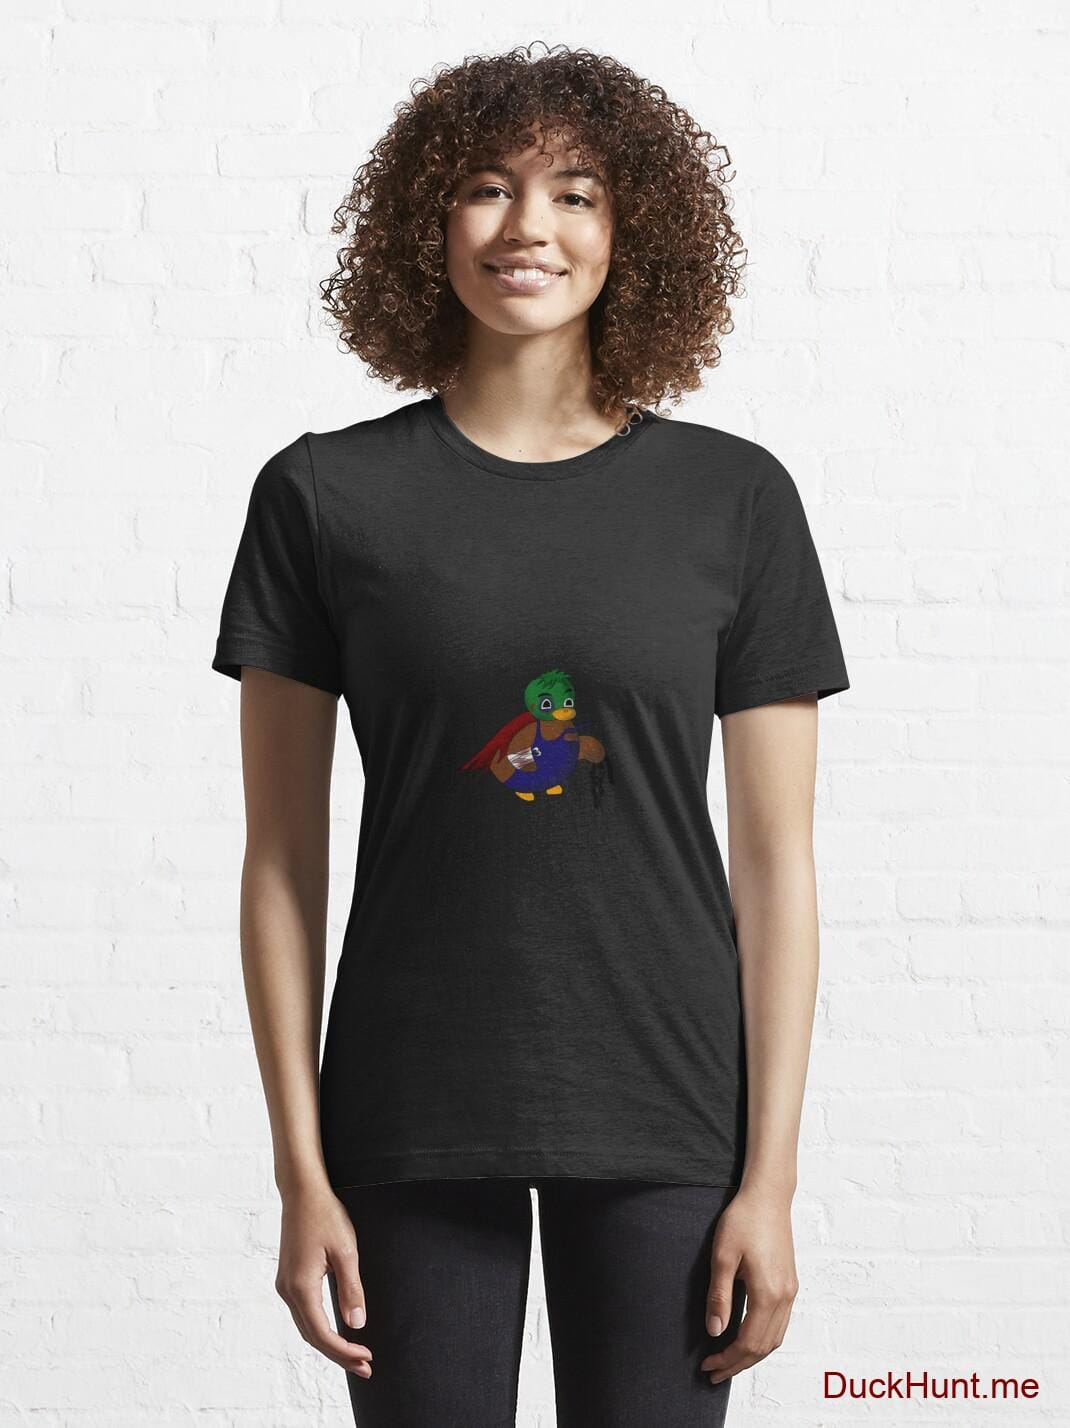 Dead DuckHunt Boss (smokeless) Black Essential T-Shirt (Front printed) alternative image 5